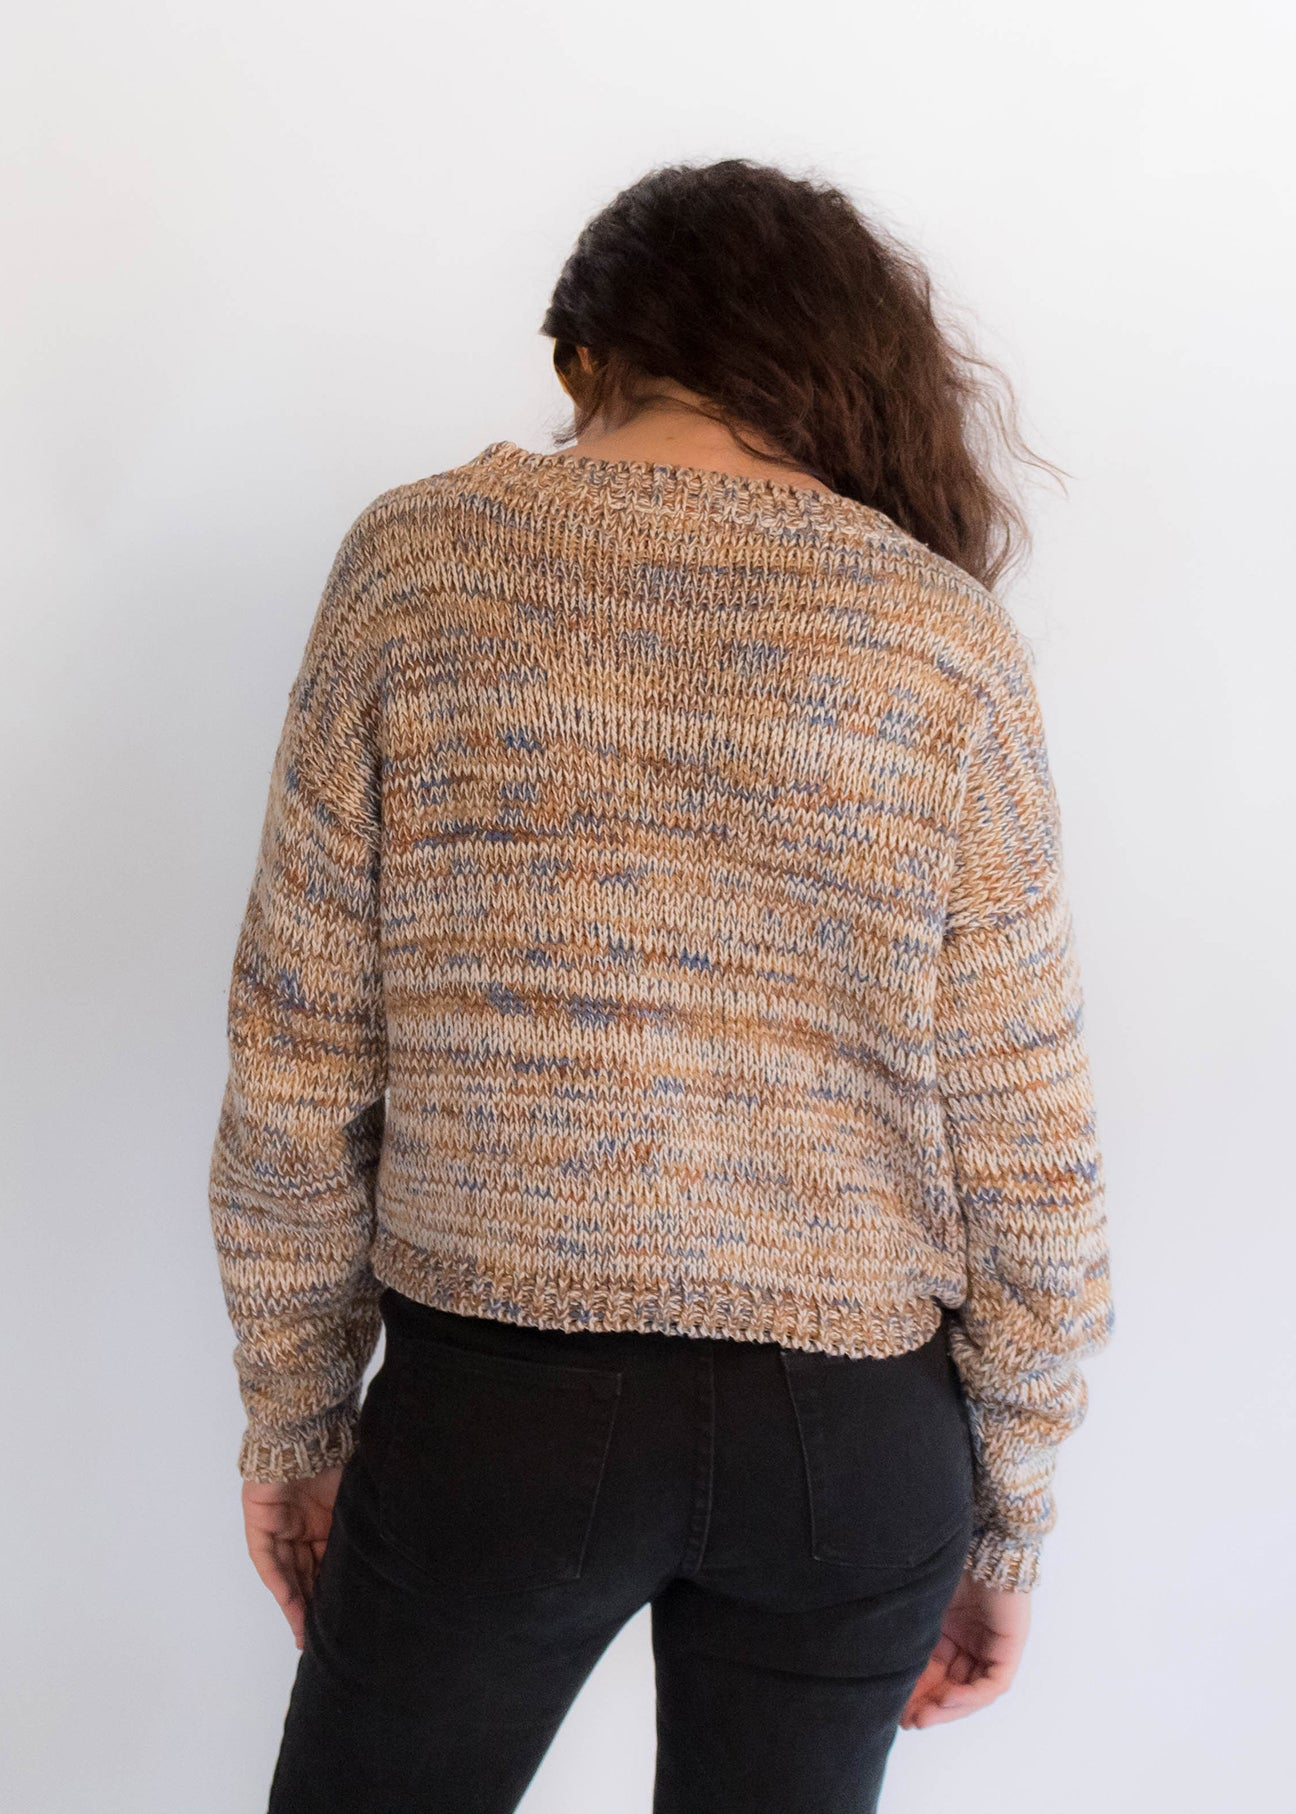 90s Space-Dyed Cable Knit Crop Sweater